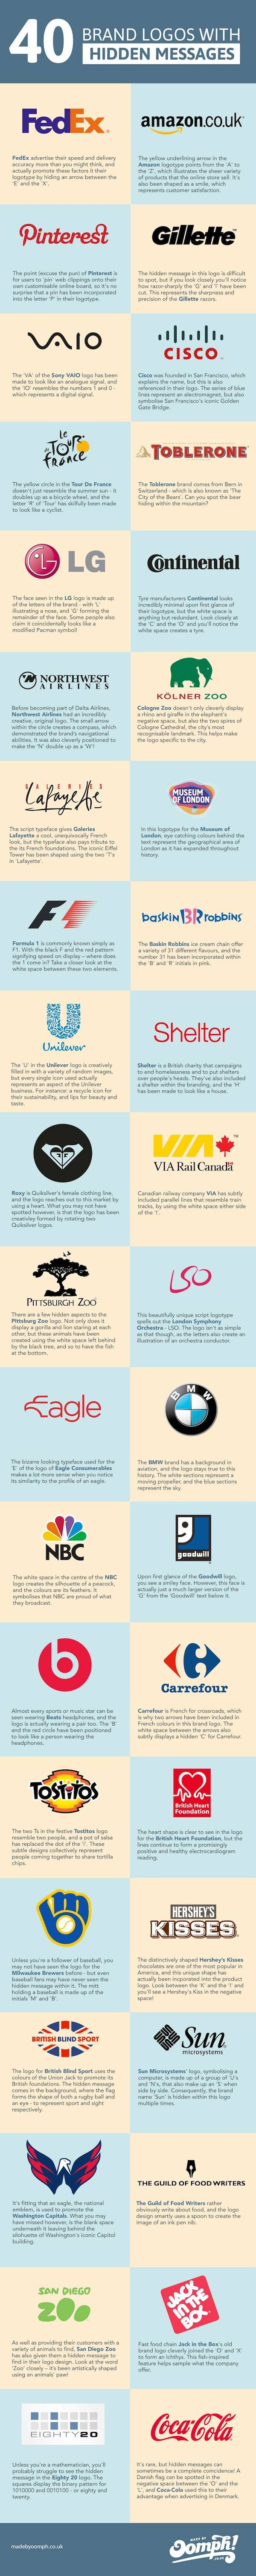 The Hidden Messages Behind 40 Famous Logos